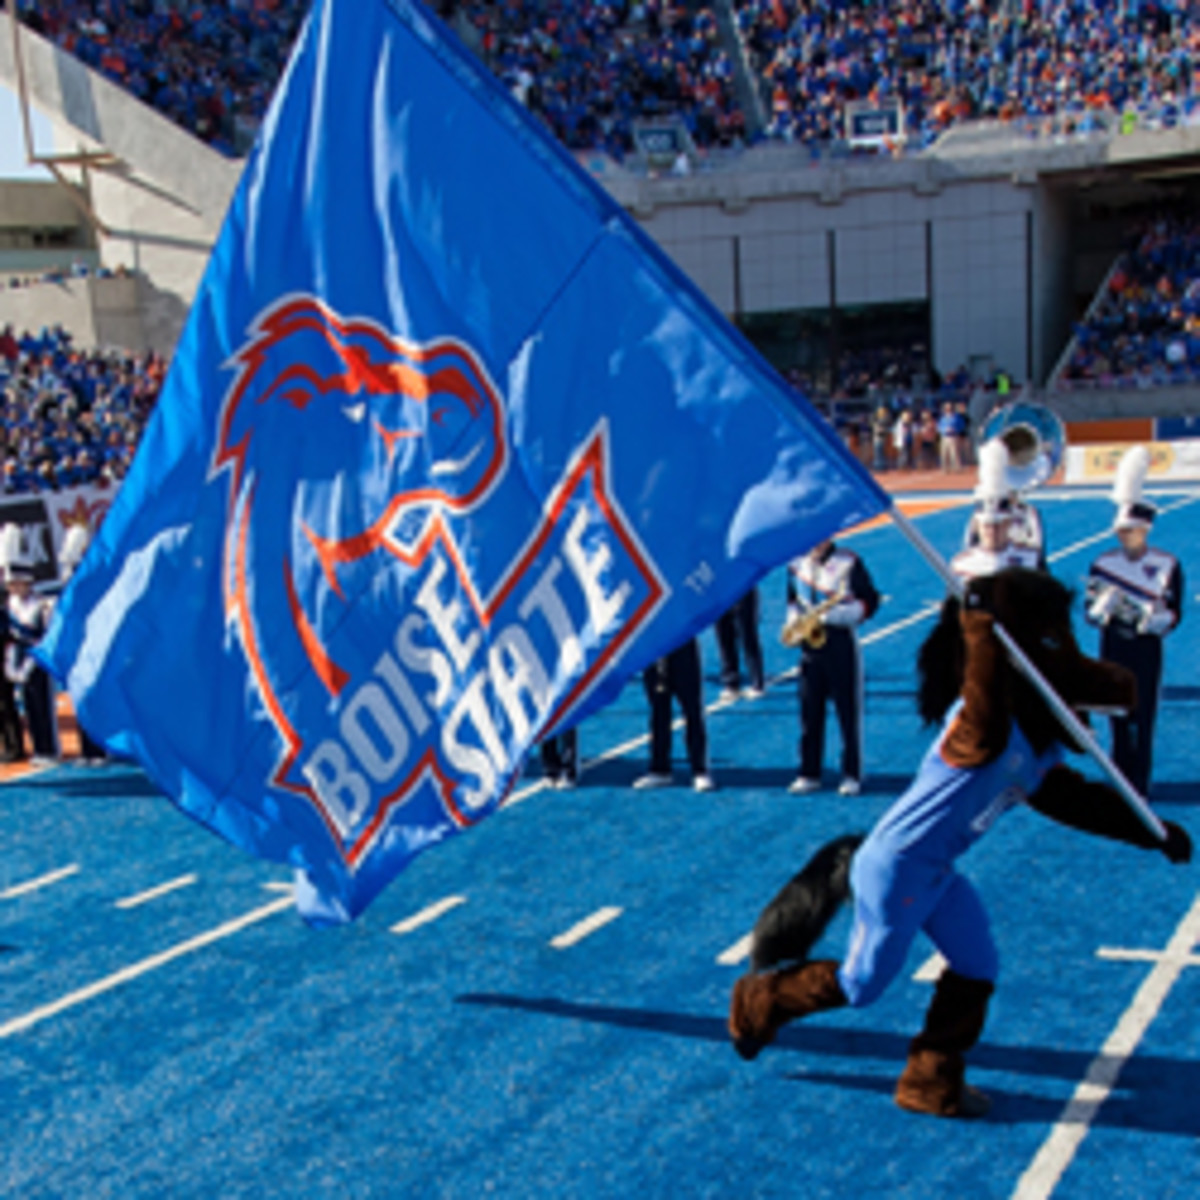 A new Mountain West TV deal could lure Boise State away from the Big East. (Otto Kitsinger III/Getty Images)